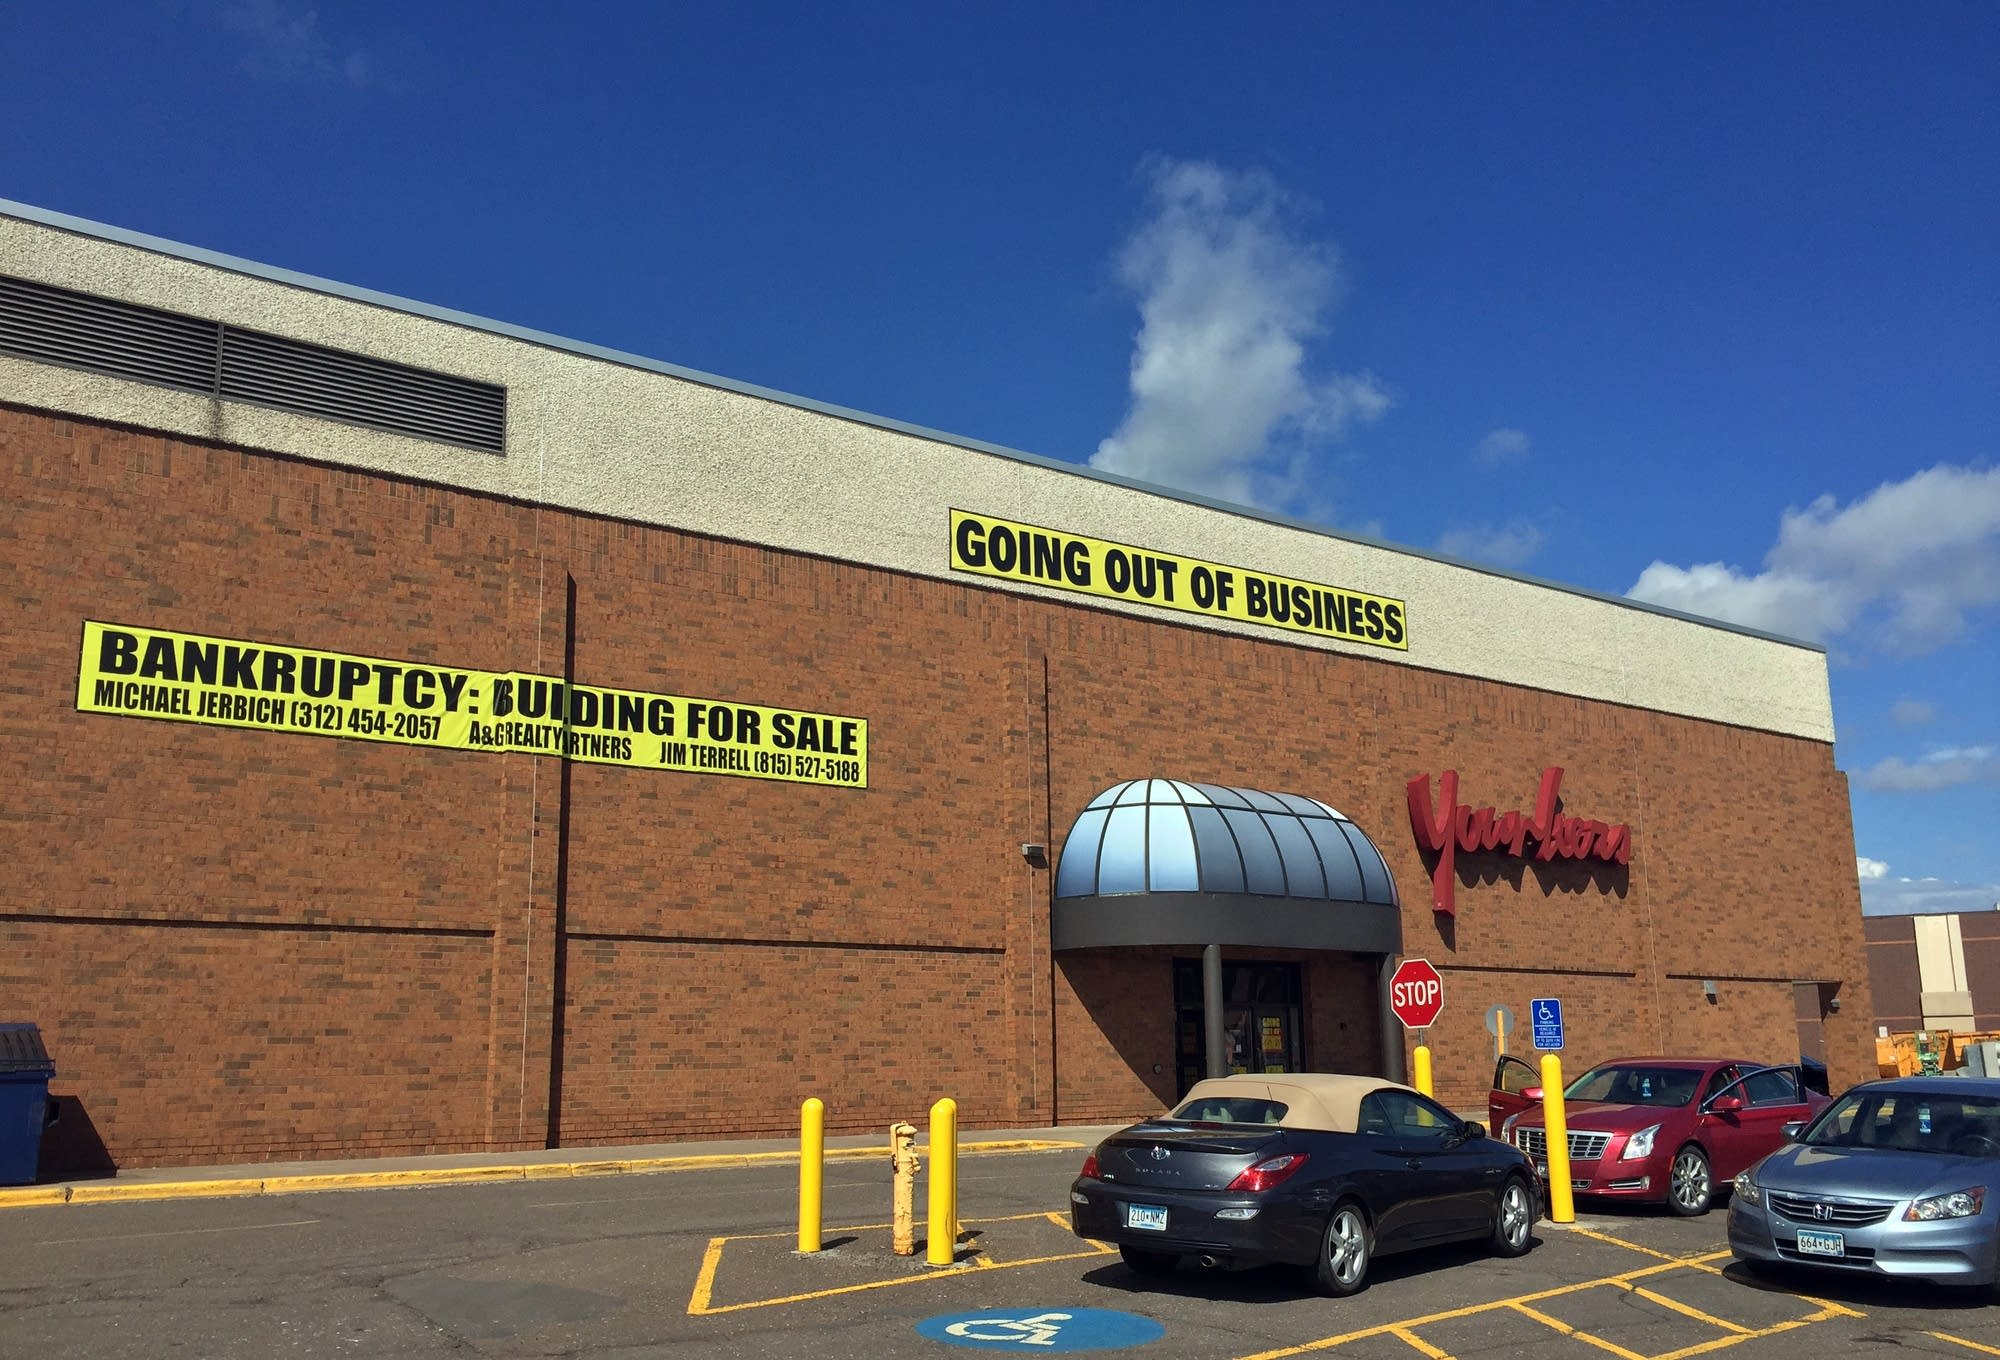 Younker's during it's closing sale in 2018 (MPR News)